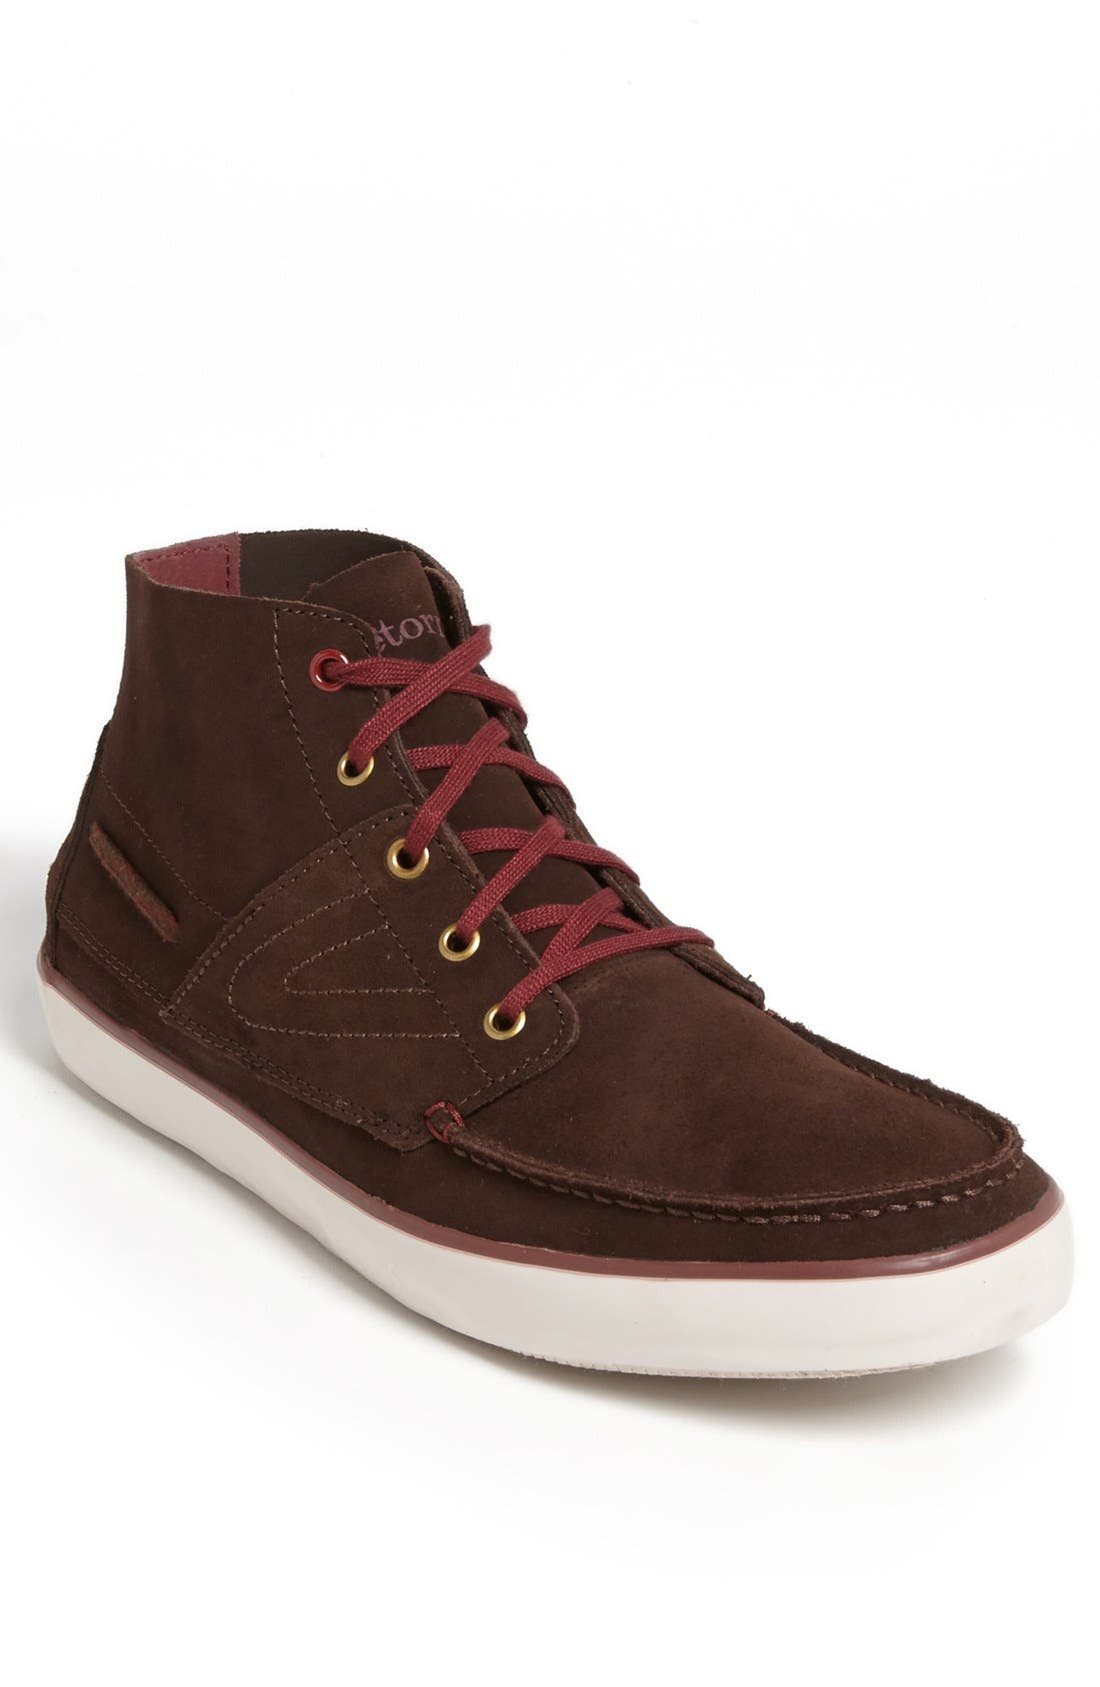 Alternate Image 1 Selected - Tretorn 'Otto Mid' Suede Sneaker (Men)